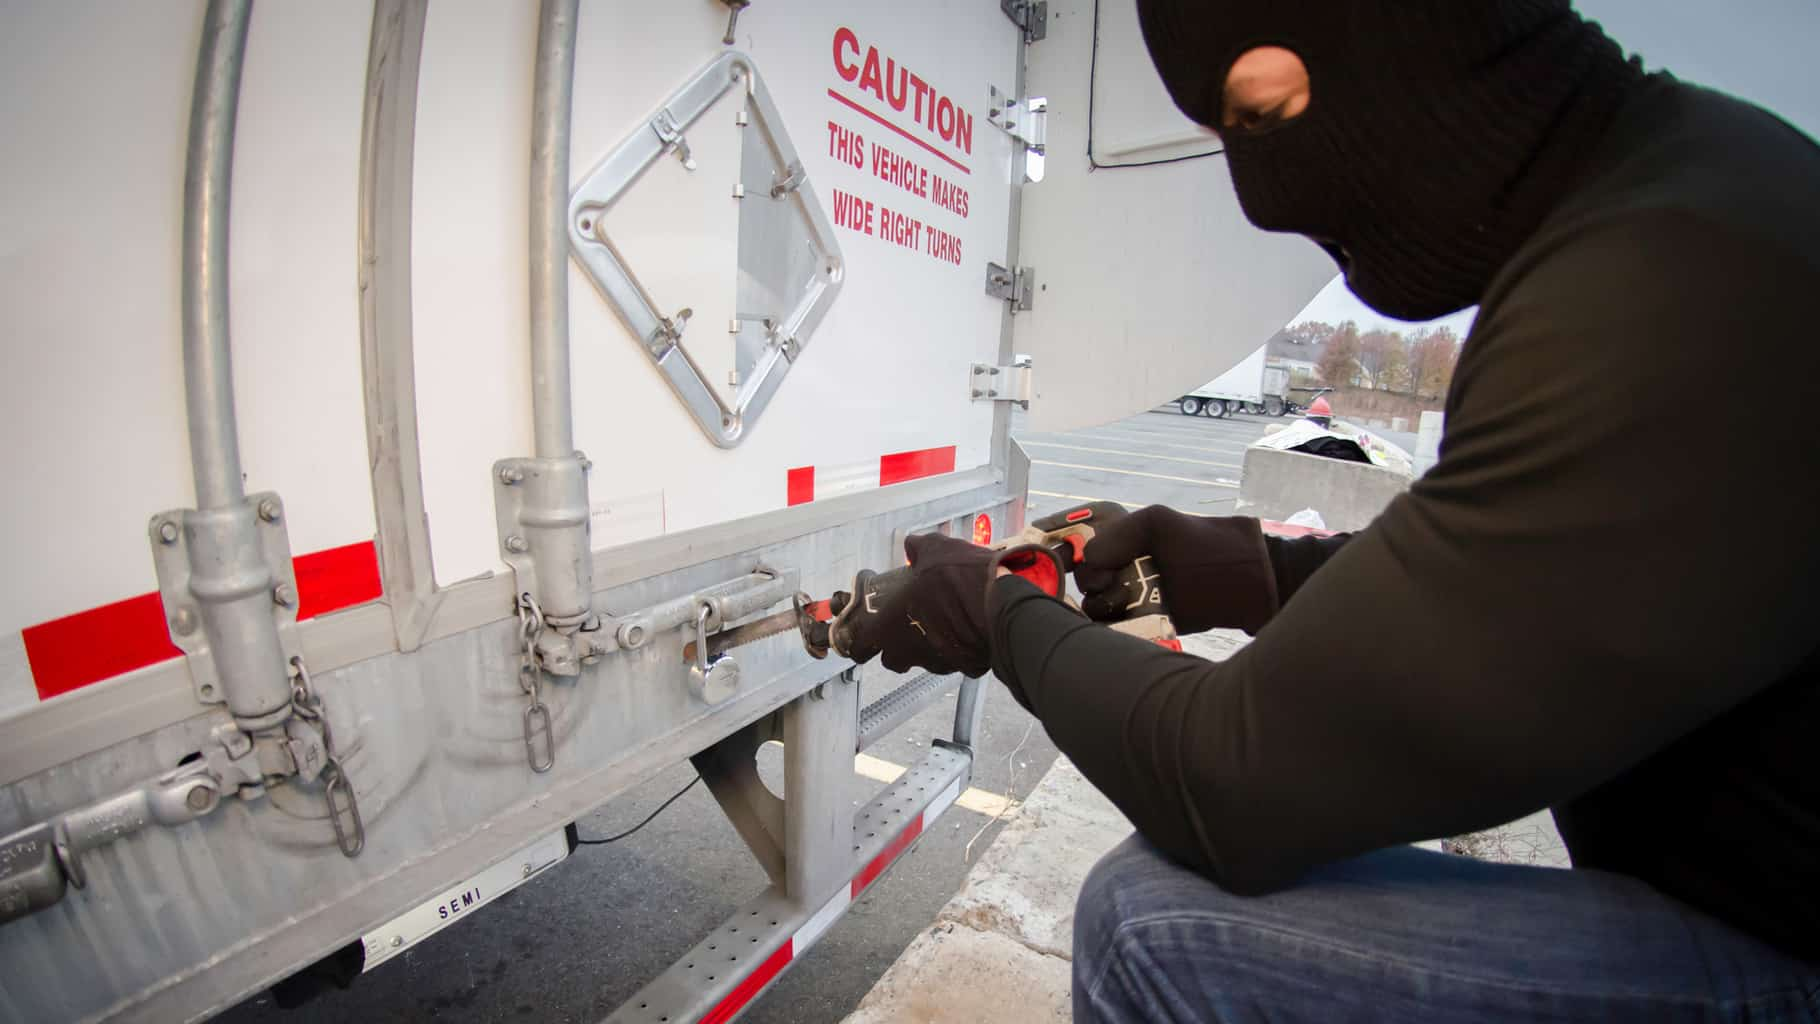 Preventing cargo theft and counterfeiting through track-and-trace (Photo: Jim Allen/FreightWaves)